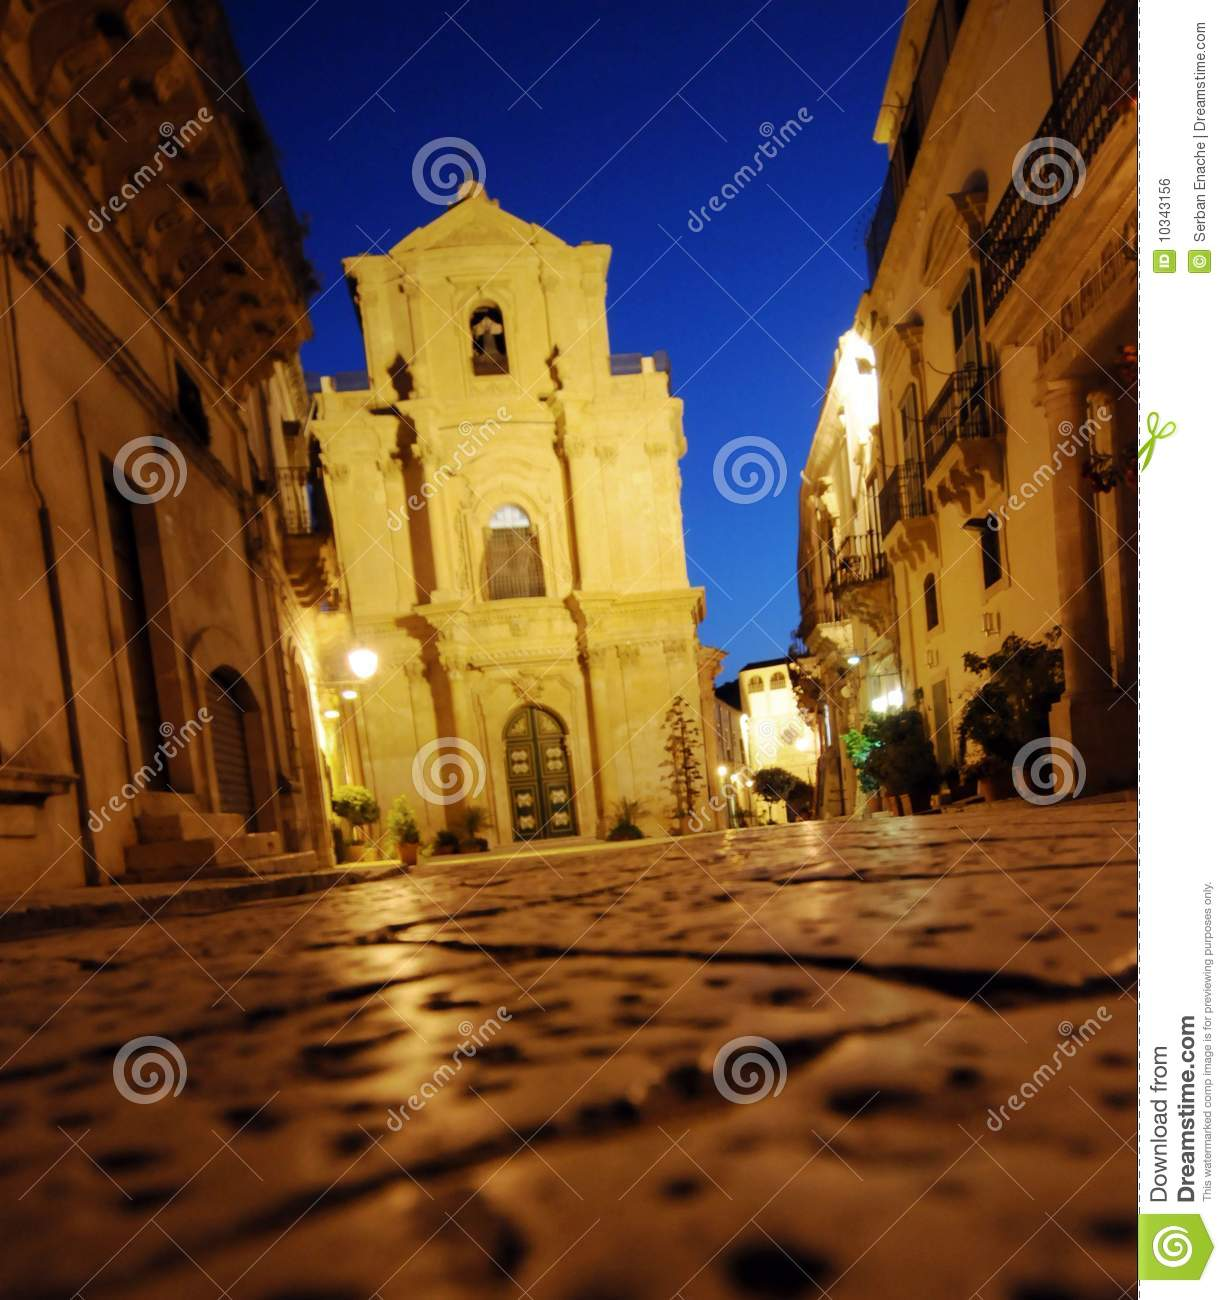 baroque church lit at night royalty free stock image image 10343156. Black Bedroom Furniture Sets. Home Design Ideas